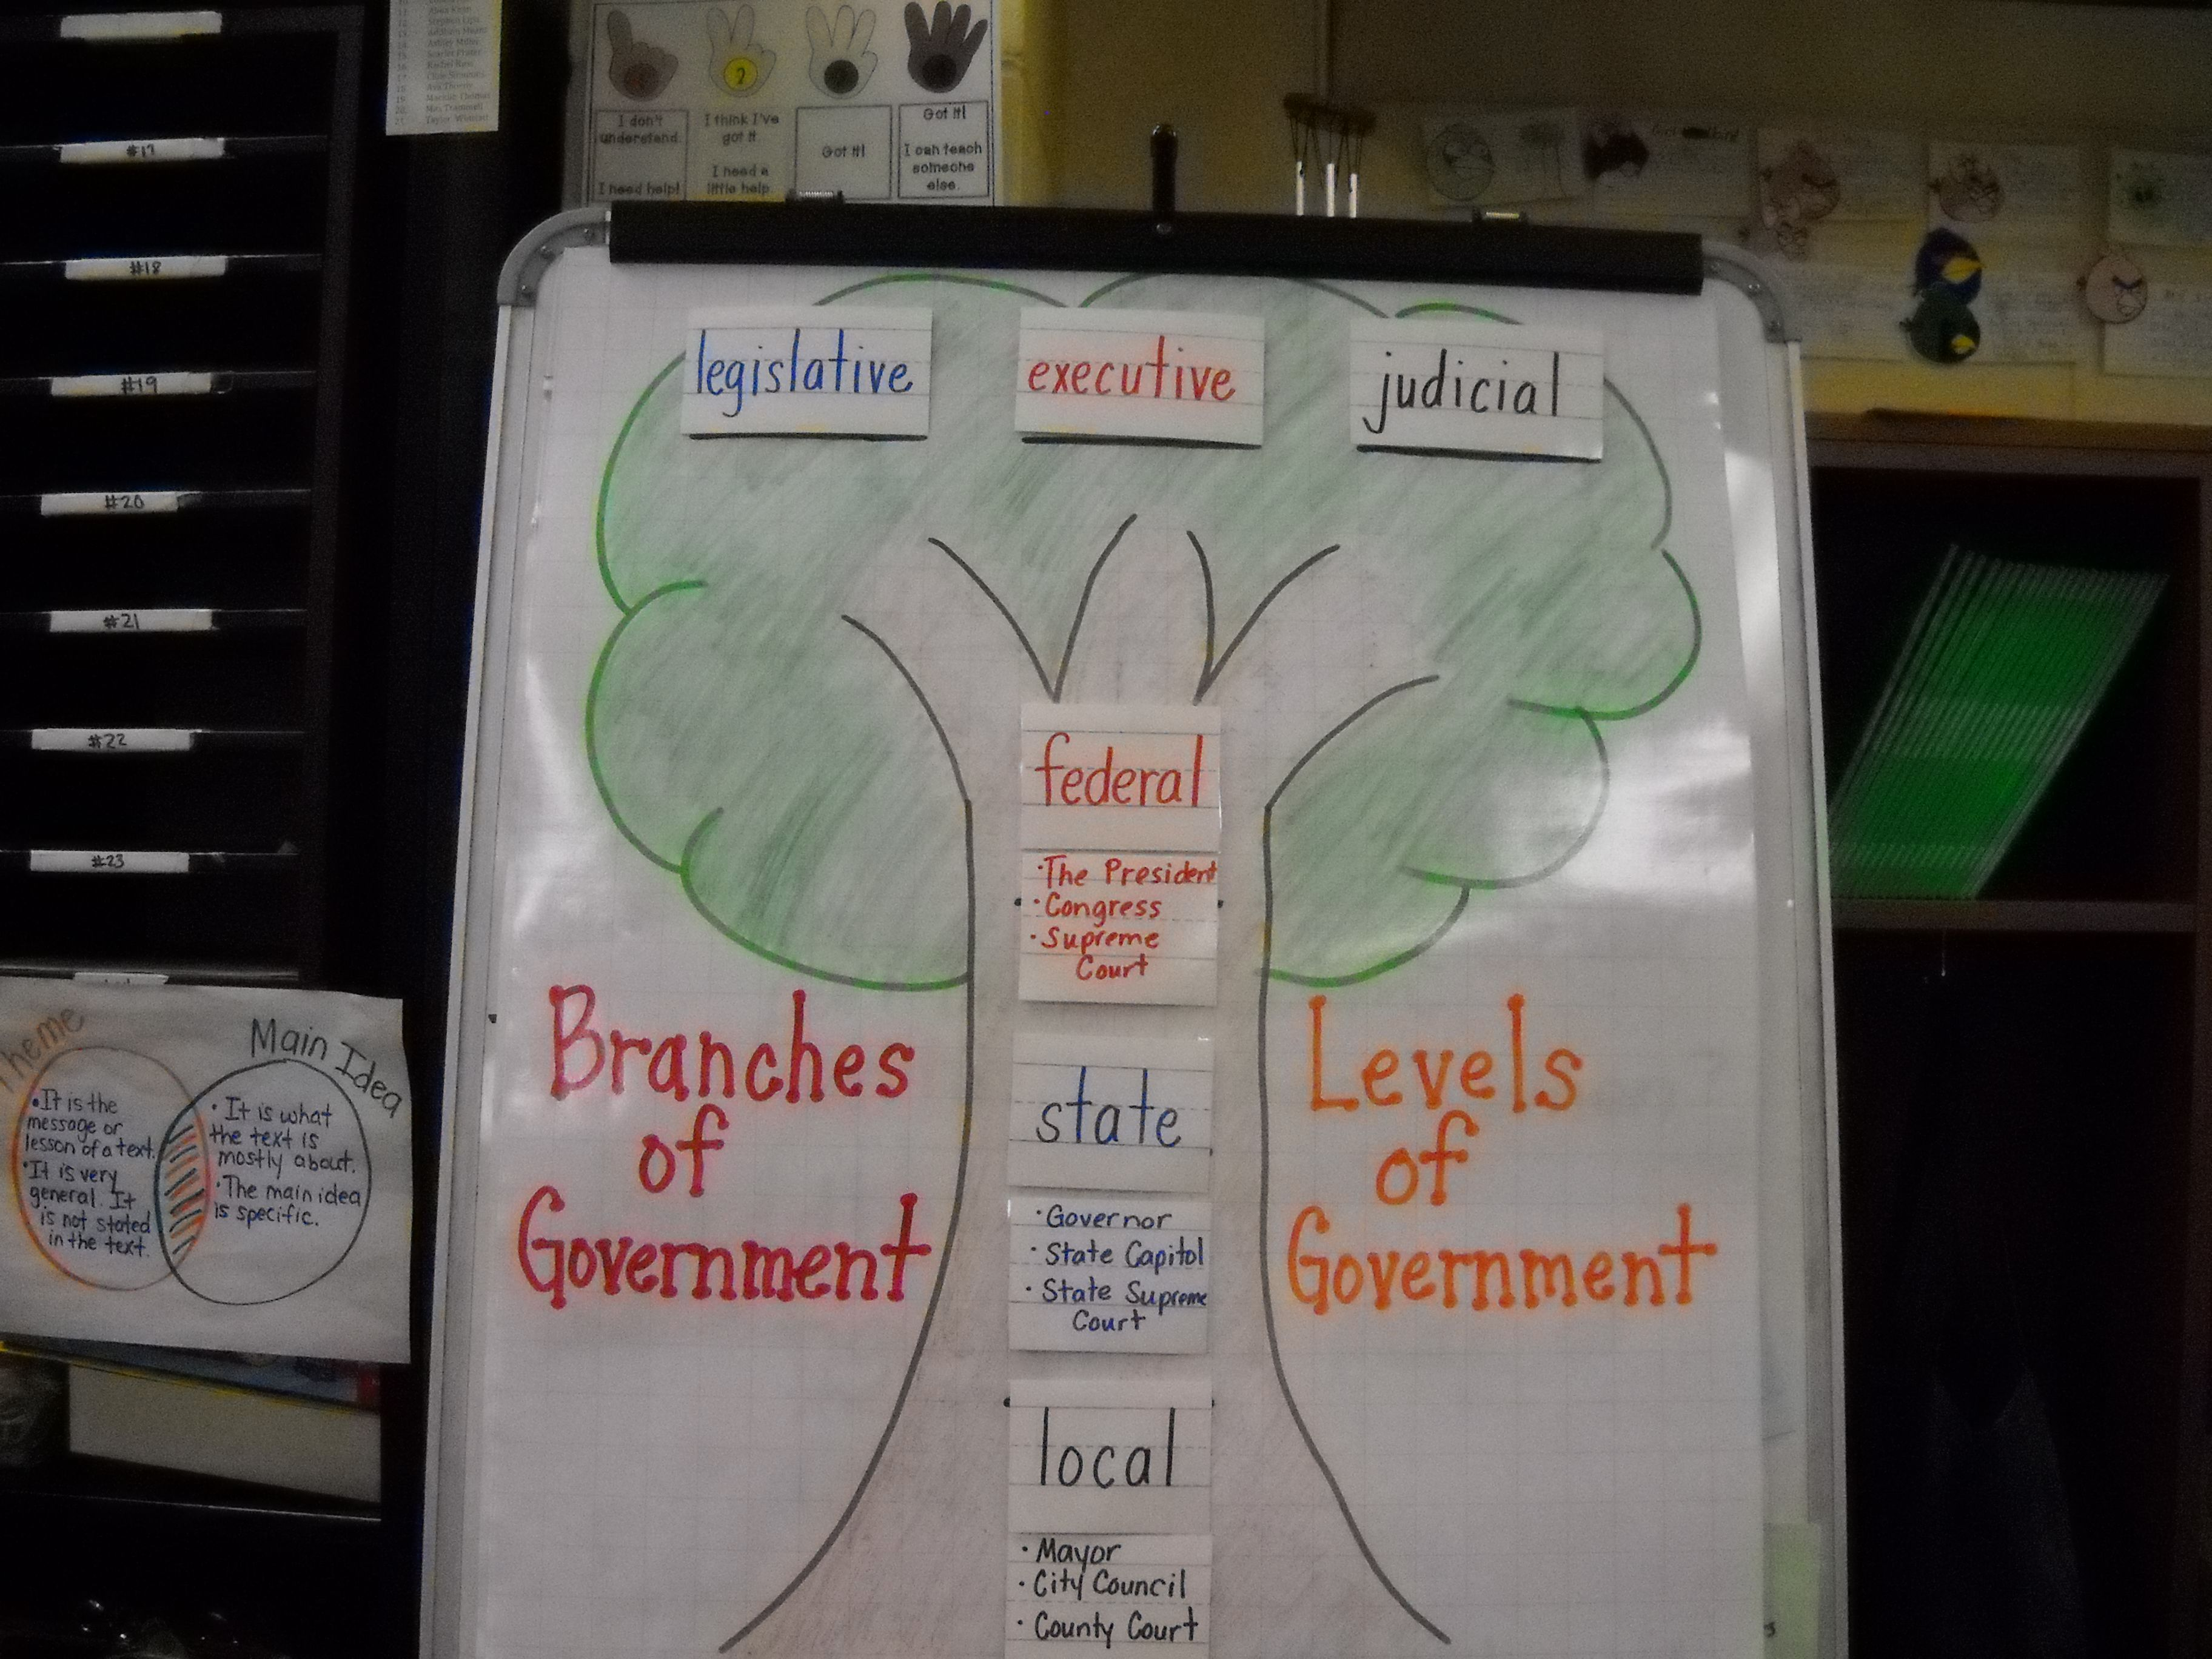 Branches And Levels Of Government Poster